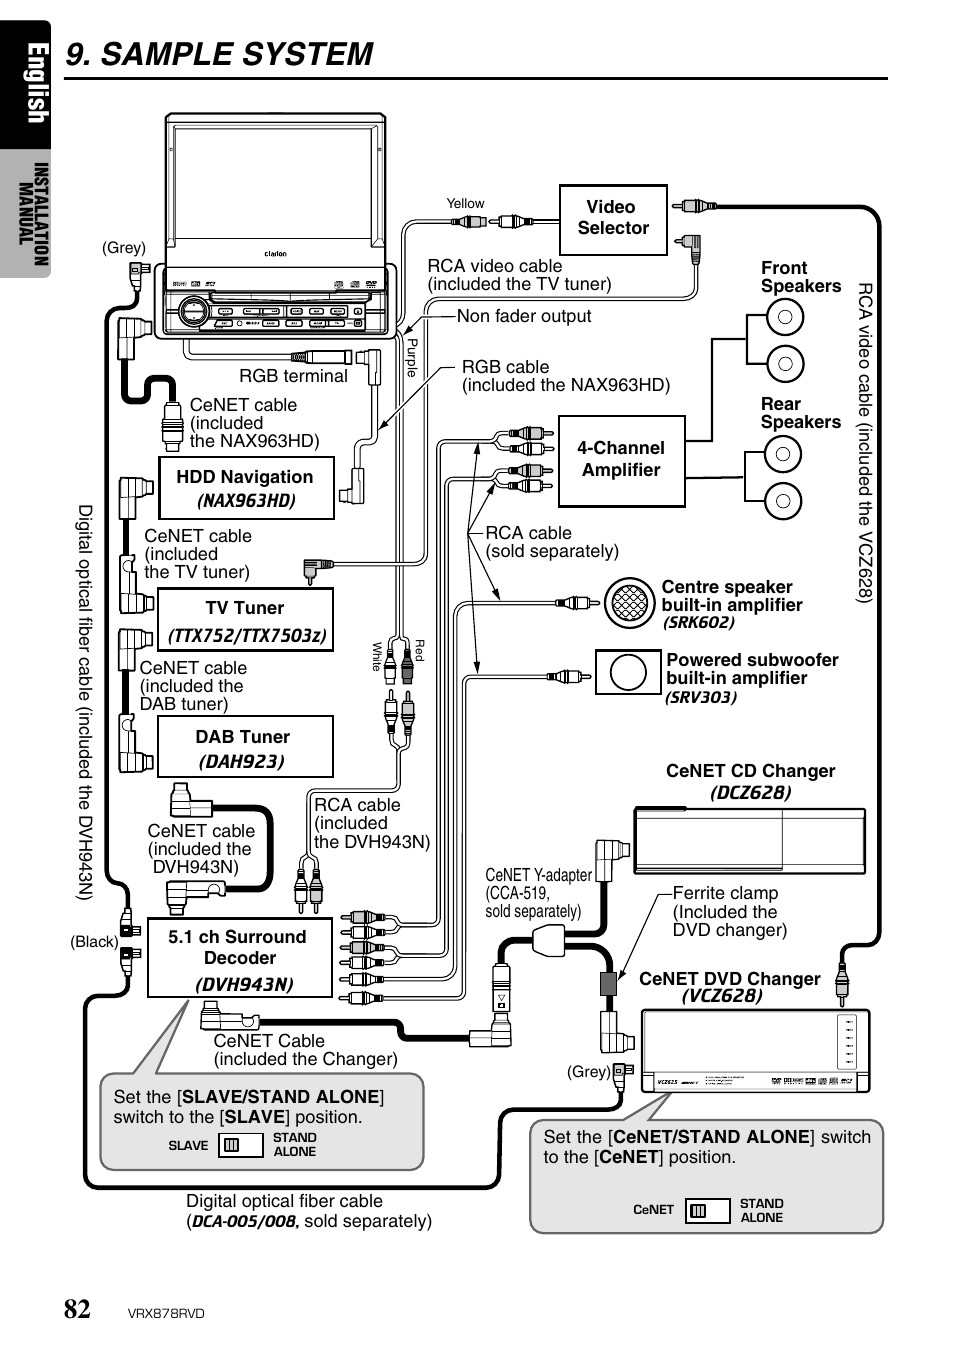 Clarion Manual Auto Electrical Wiring Diagram Yokoyama Control Transformer People Also Interest With